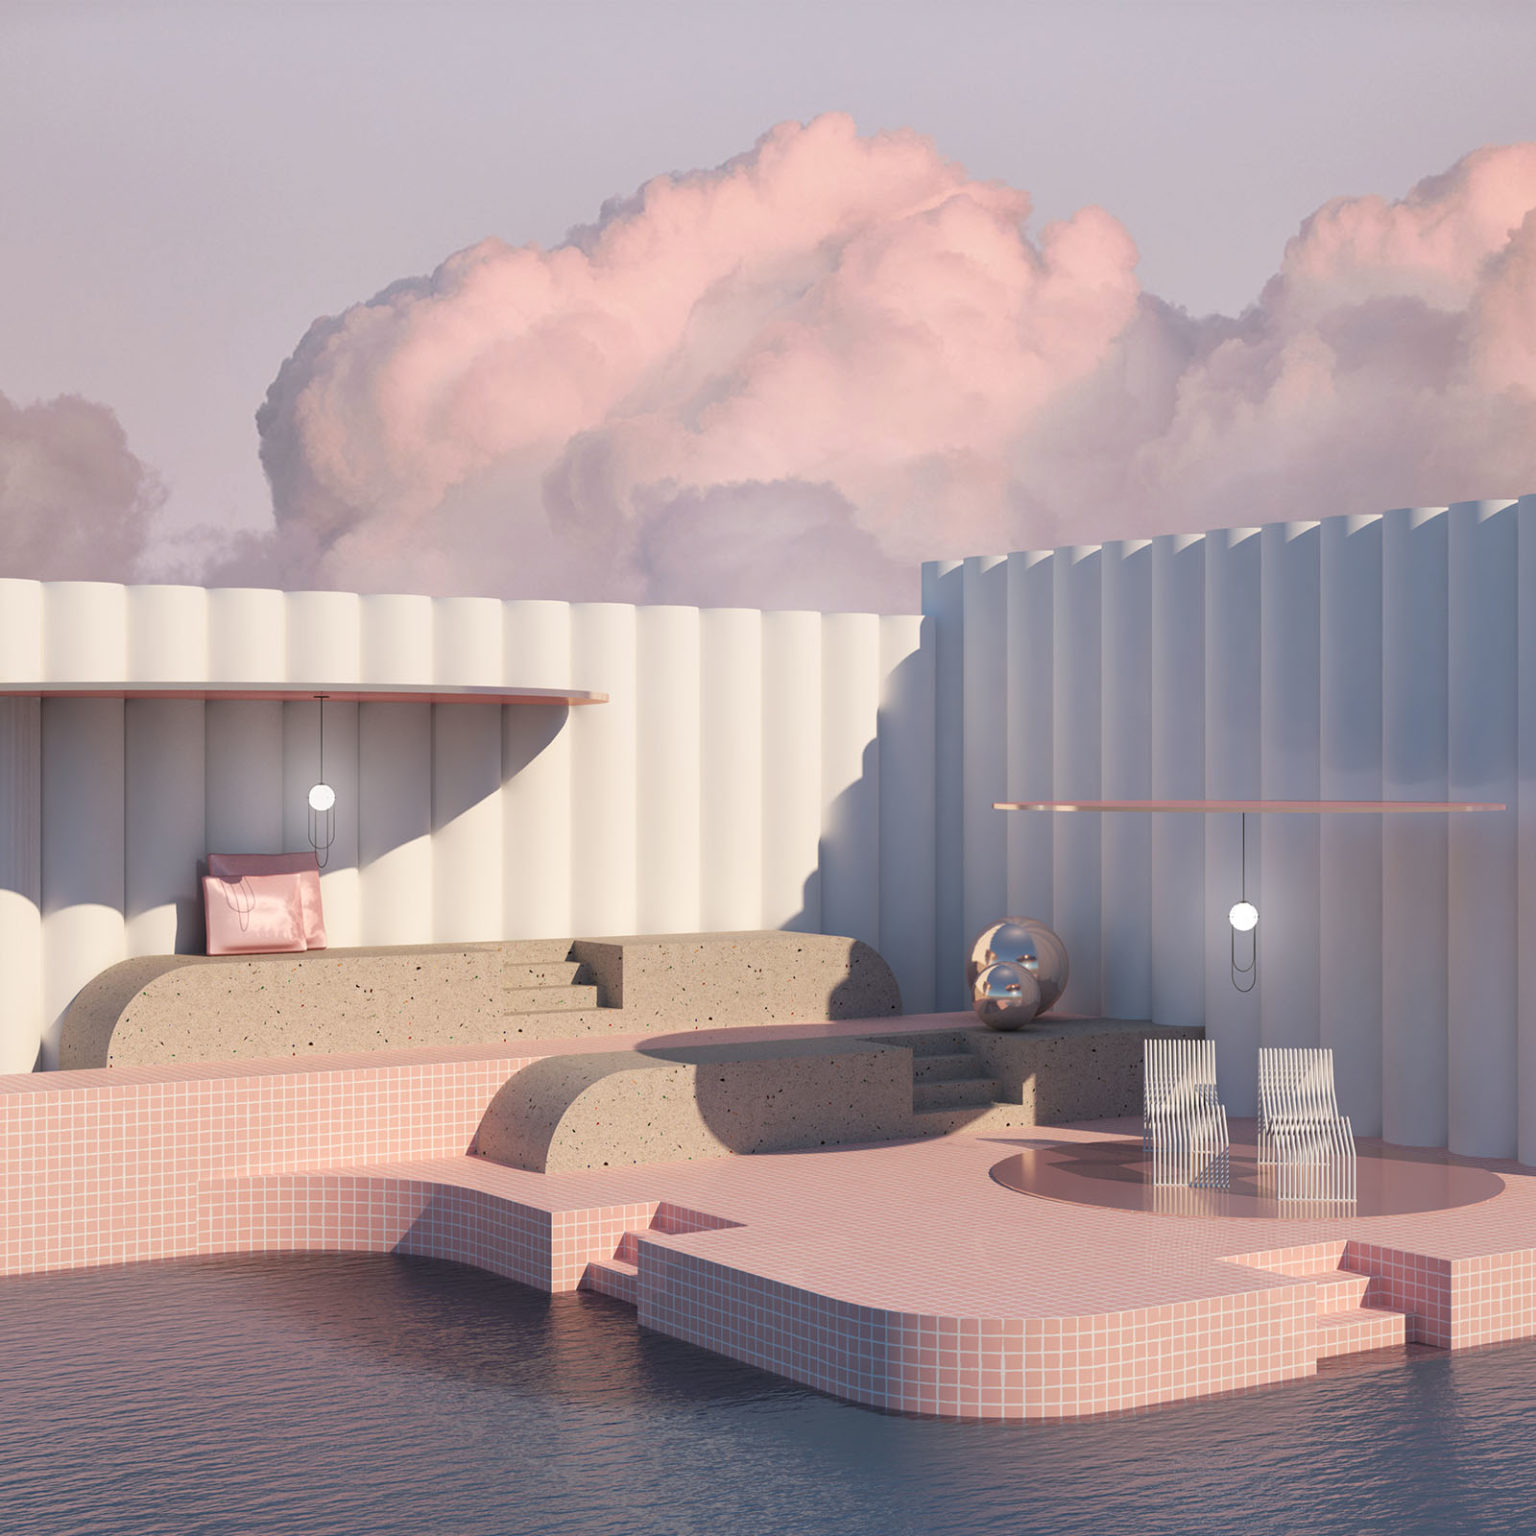 3D-visuals-trends-for-2021-2022-interior-and-exterior-spaces11